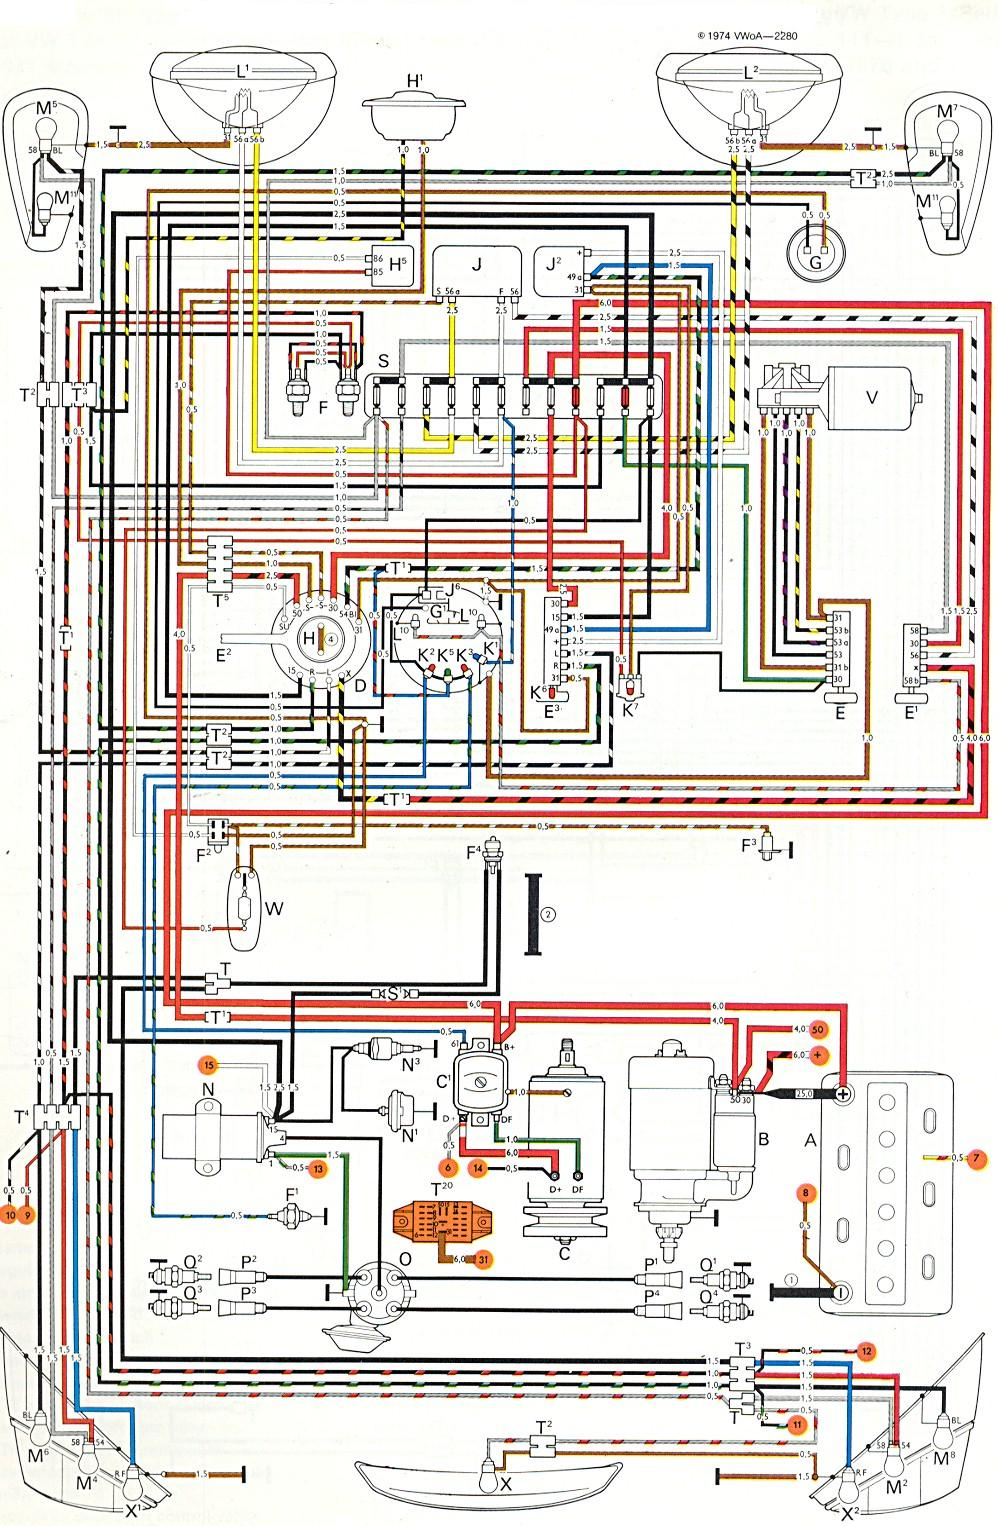 1971 super beetle wiring diagram fan dxg rakanzleiberlin de \u2022